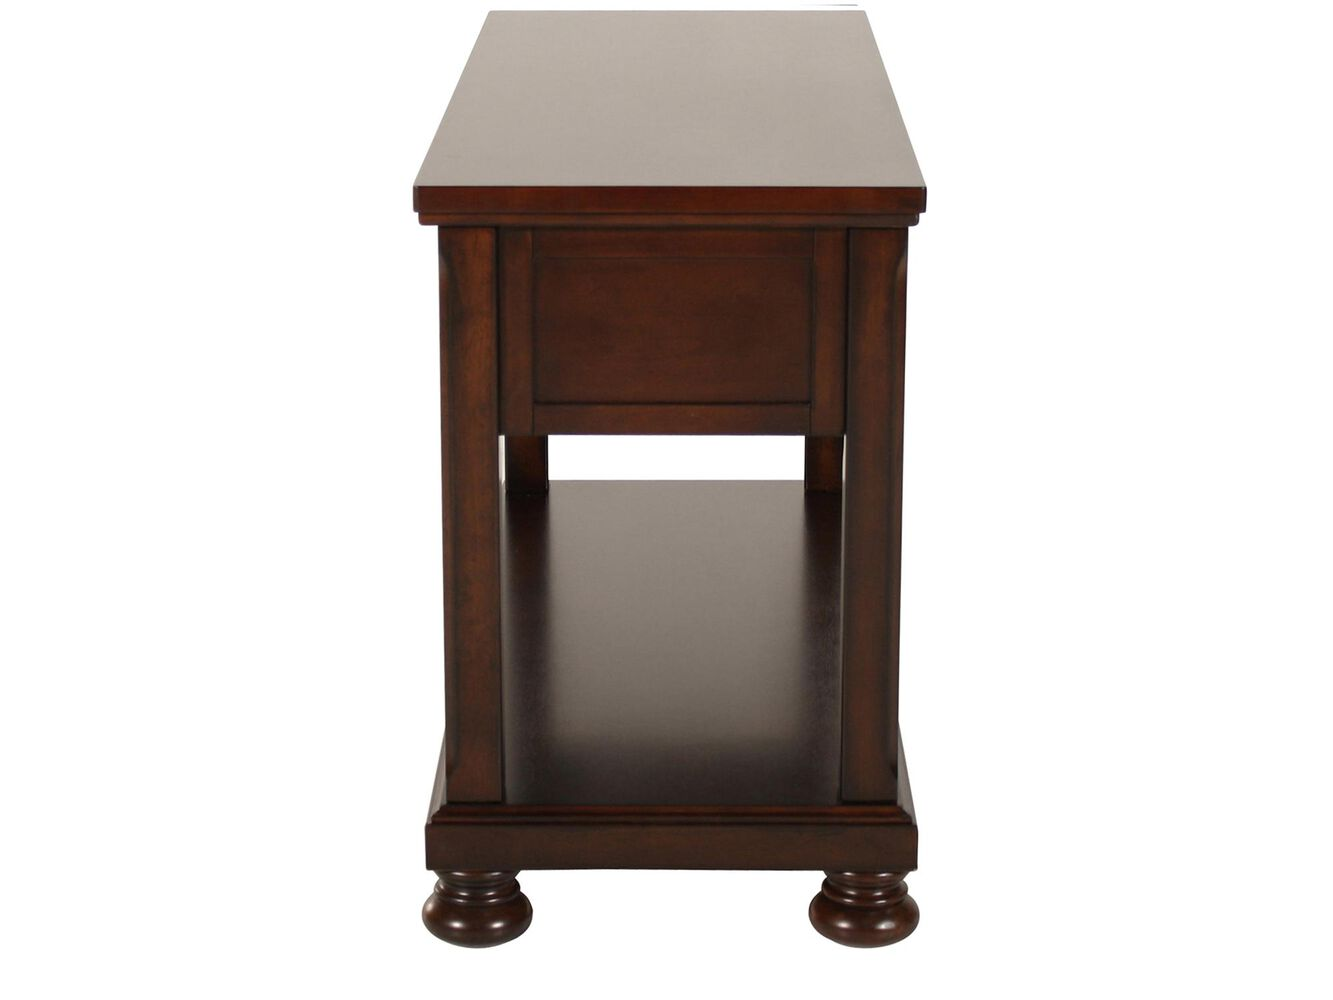 Ashley porter sofa table mathis brothers furniture for Sofa table vs console table